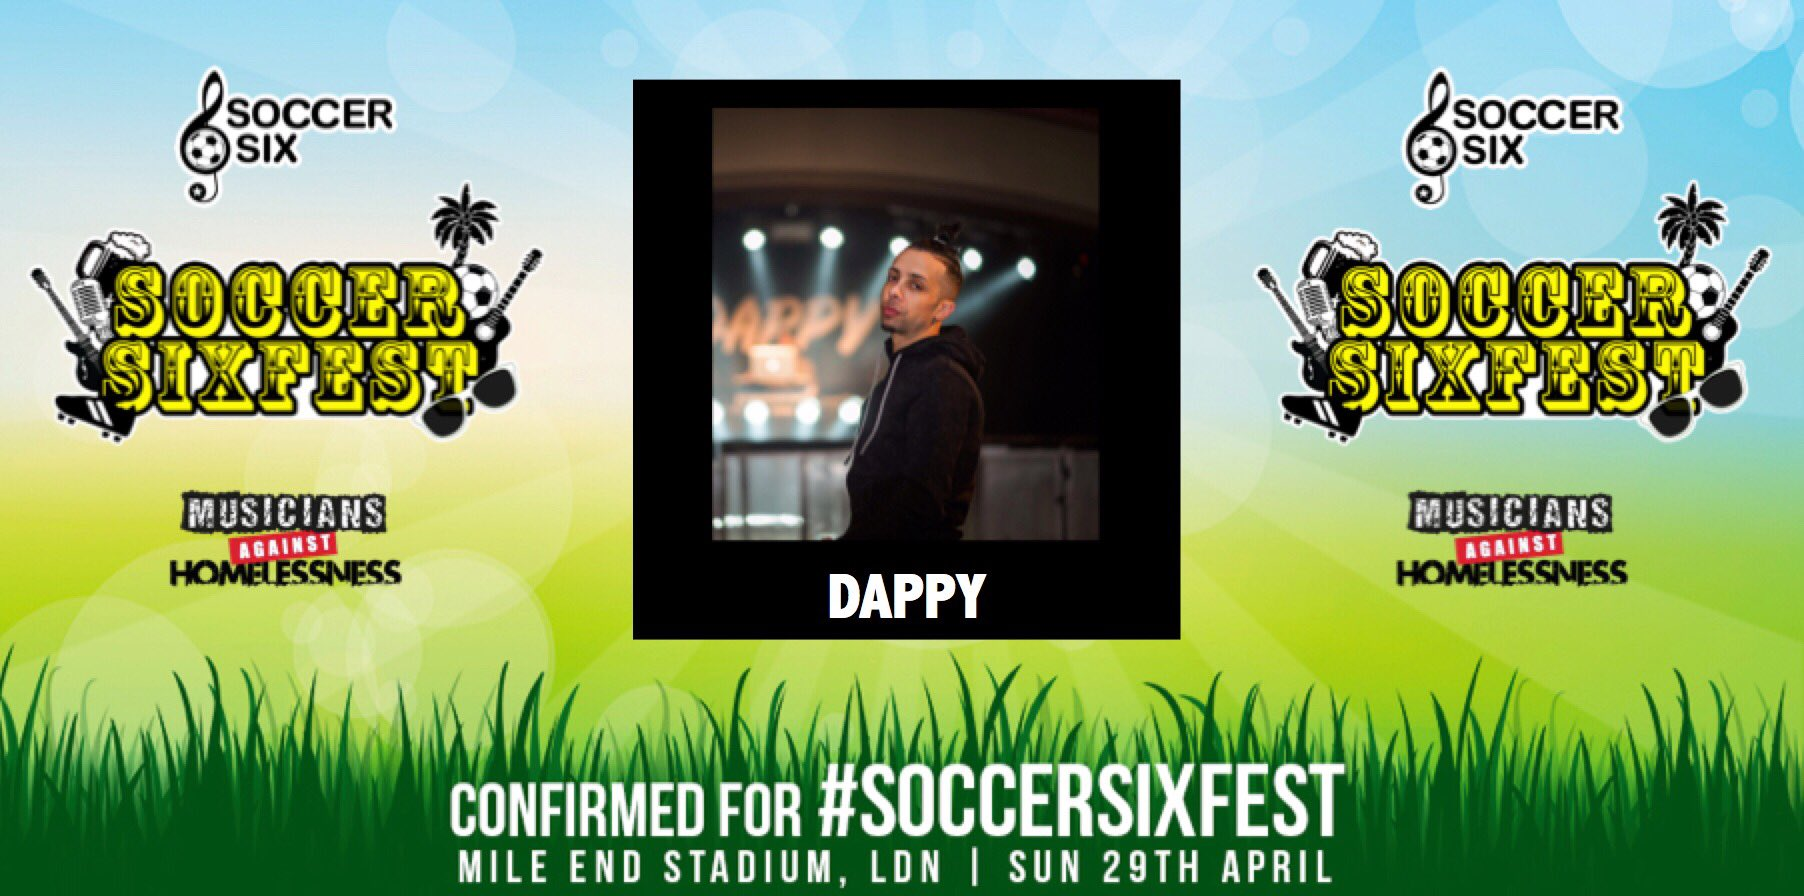 ATTN: I am playing @SoccerSix at Mile End Stadium, London on SUN 29TH APRIL! Tickets:https://t.co/orOCzD5n5a  RT! https://t.co/4Pp9L1uhWg